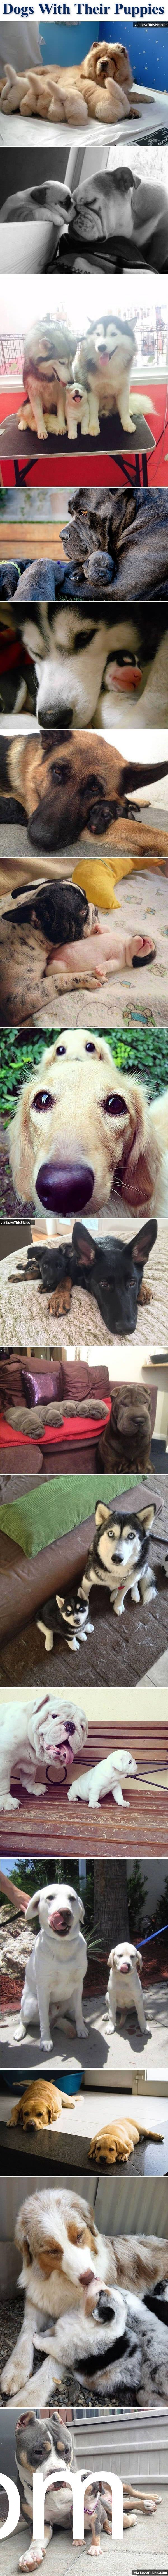 LIKE some #PaleoPets Side effects of viewing these images include: feelings of joy, feelings of sadness, the desire to be loved, ovary implosion and so on. http://m.lovethispic.com/image/193076/dogs-with-their-puppies